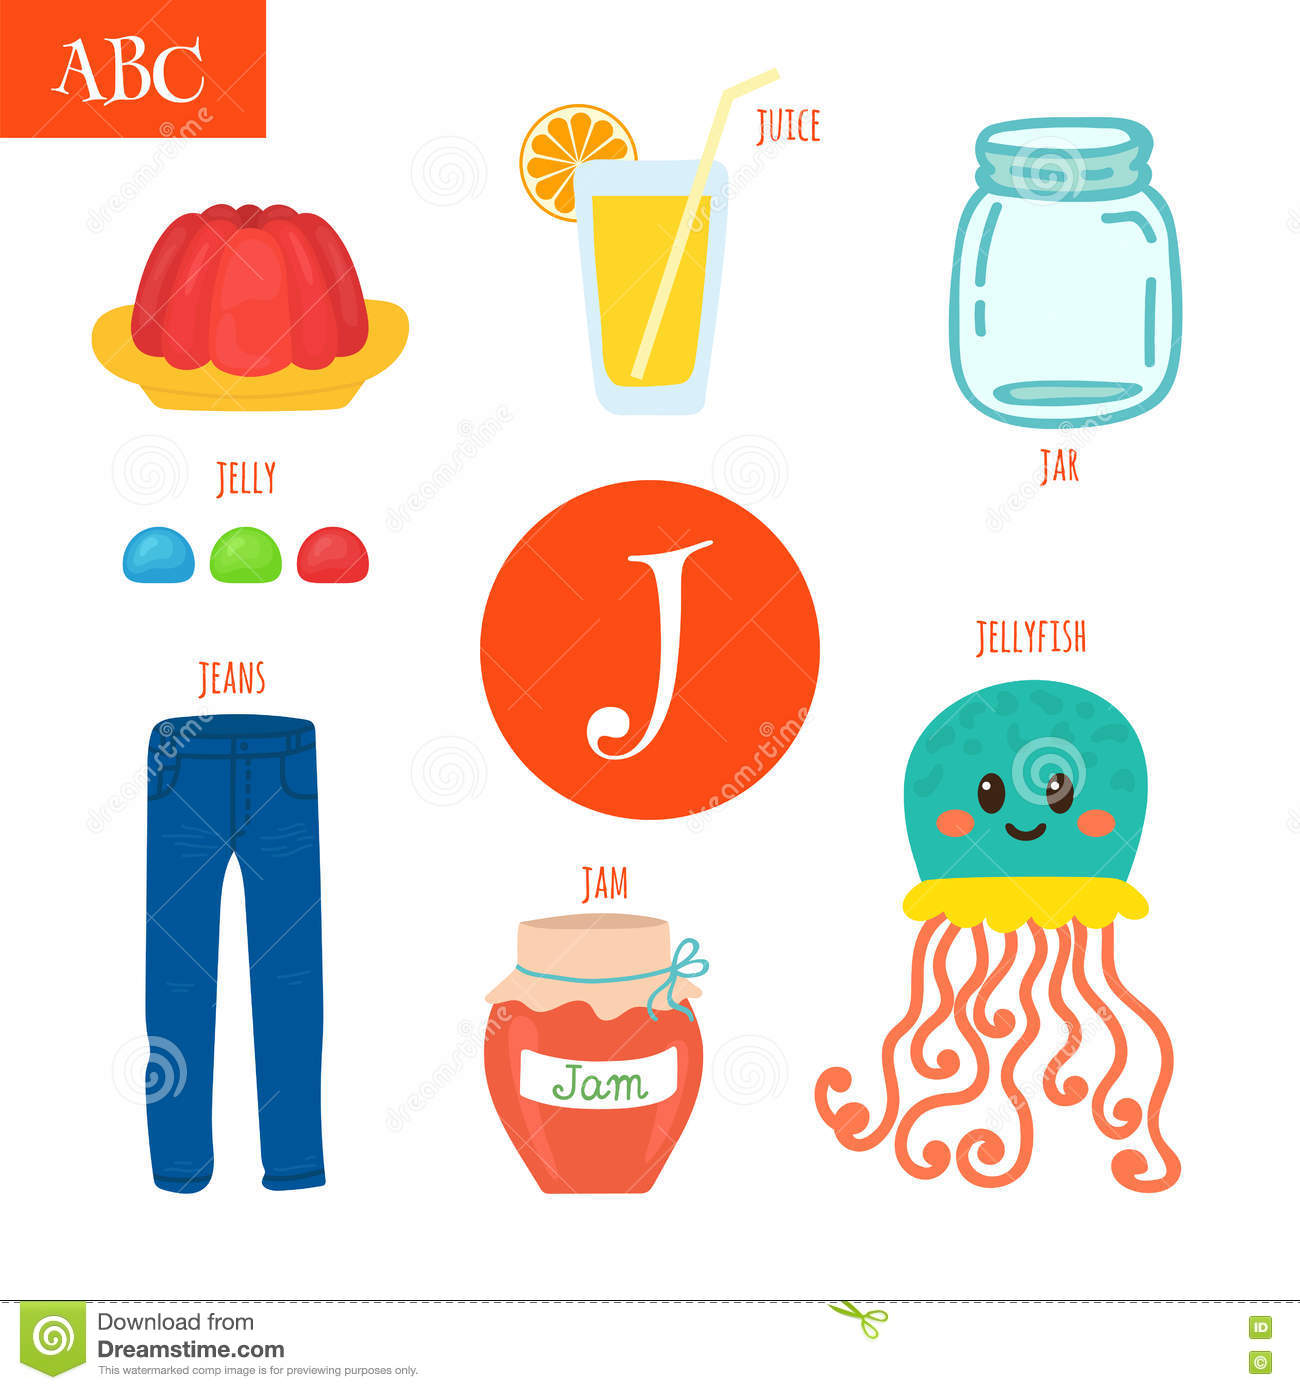 Letter J Cartoon Alphabet For Children Jellyfish Jelly Jar Stock Vector